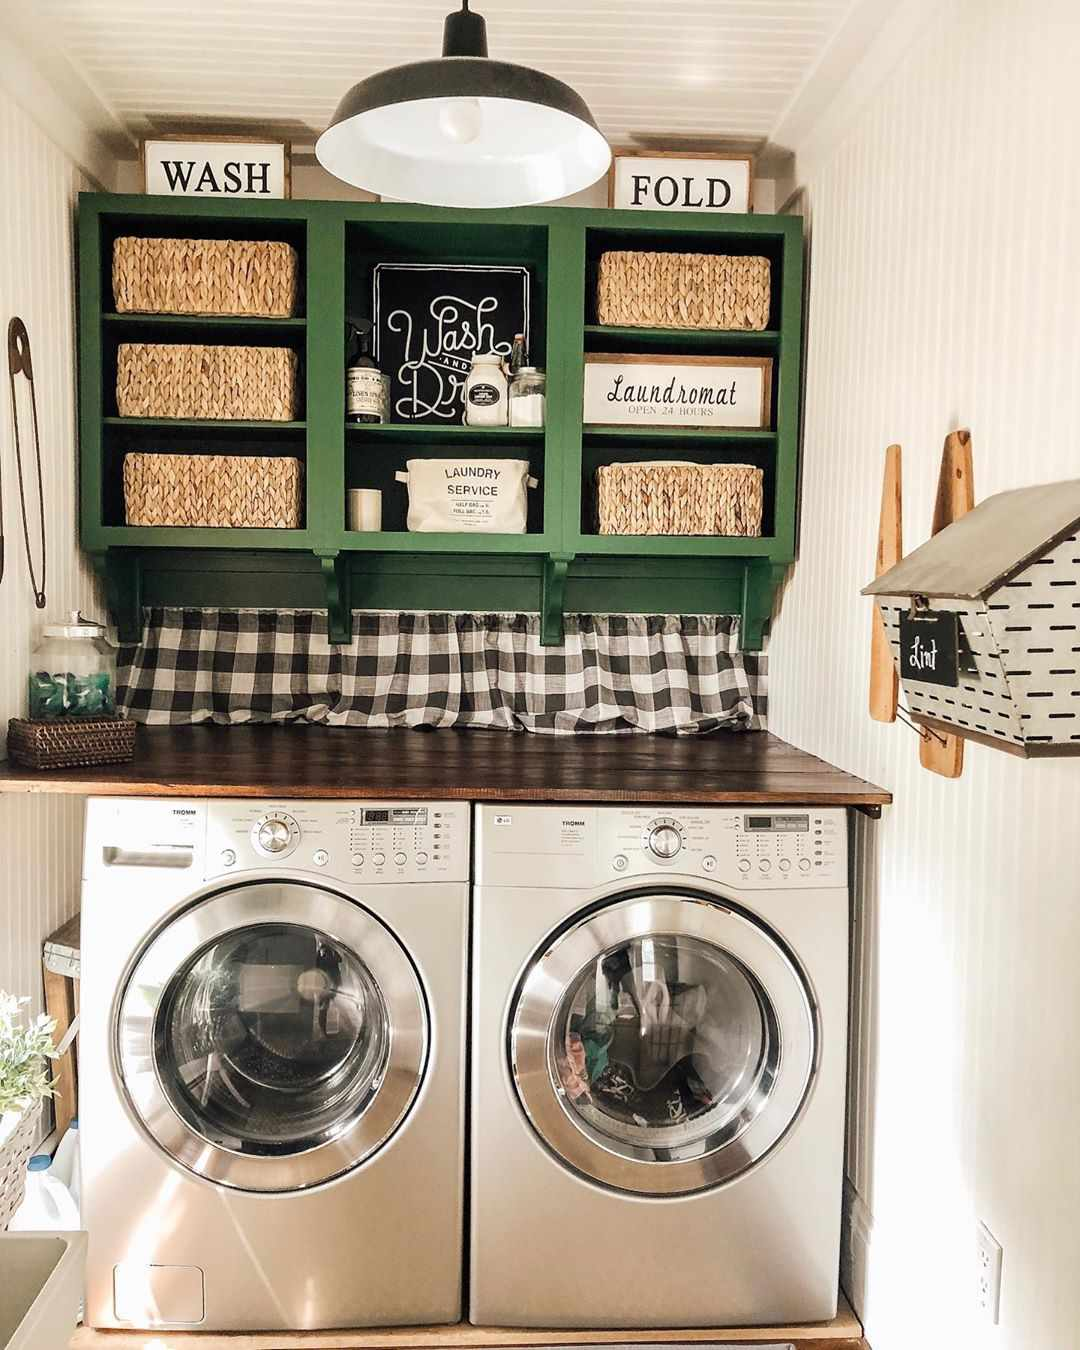 Small laundry room with green shelves